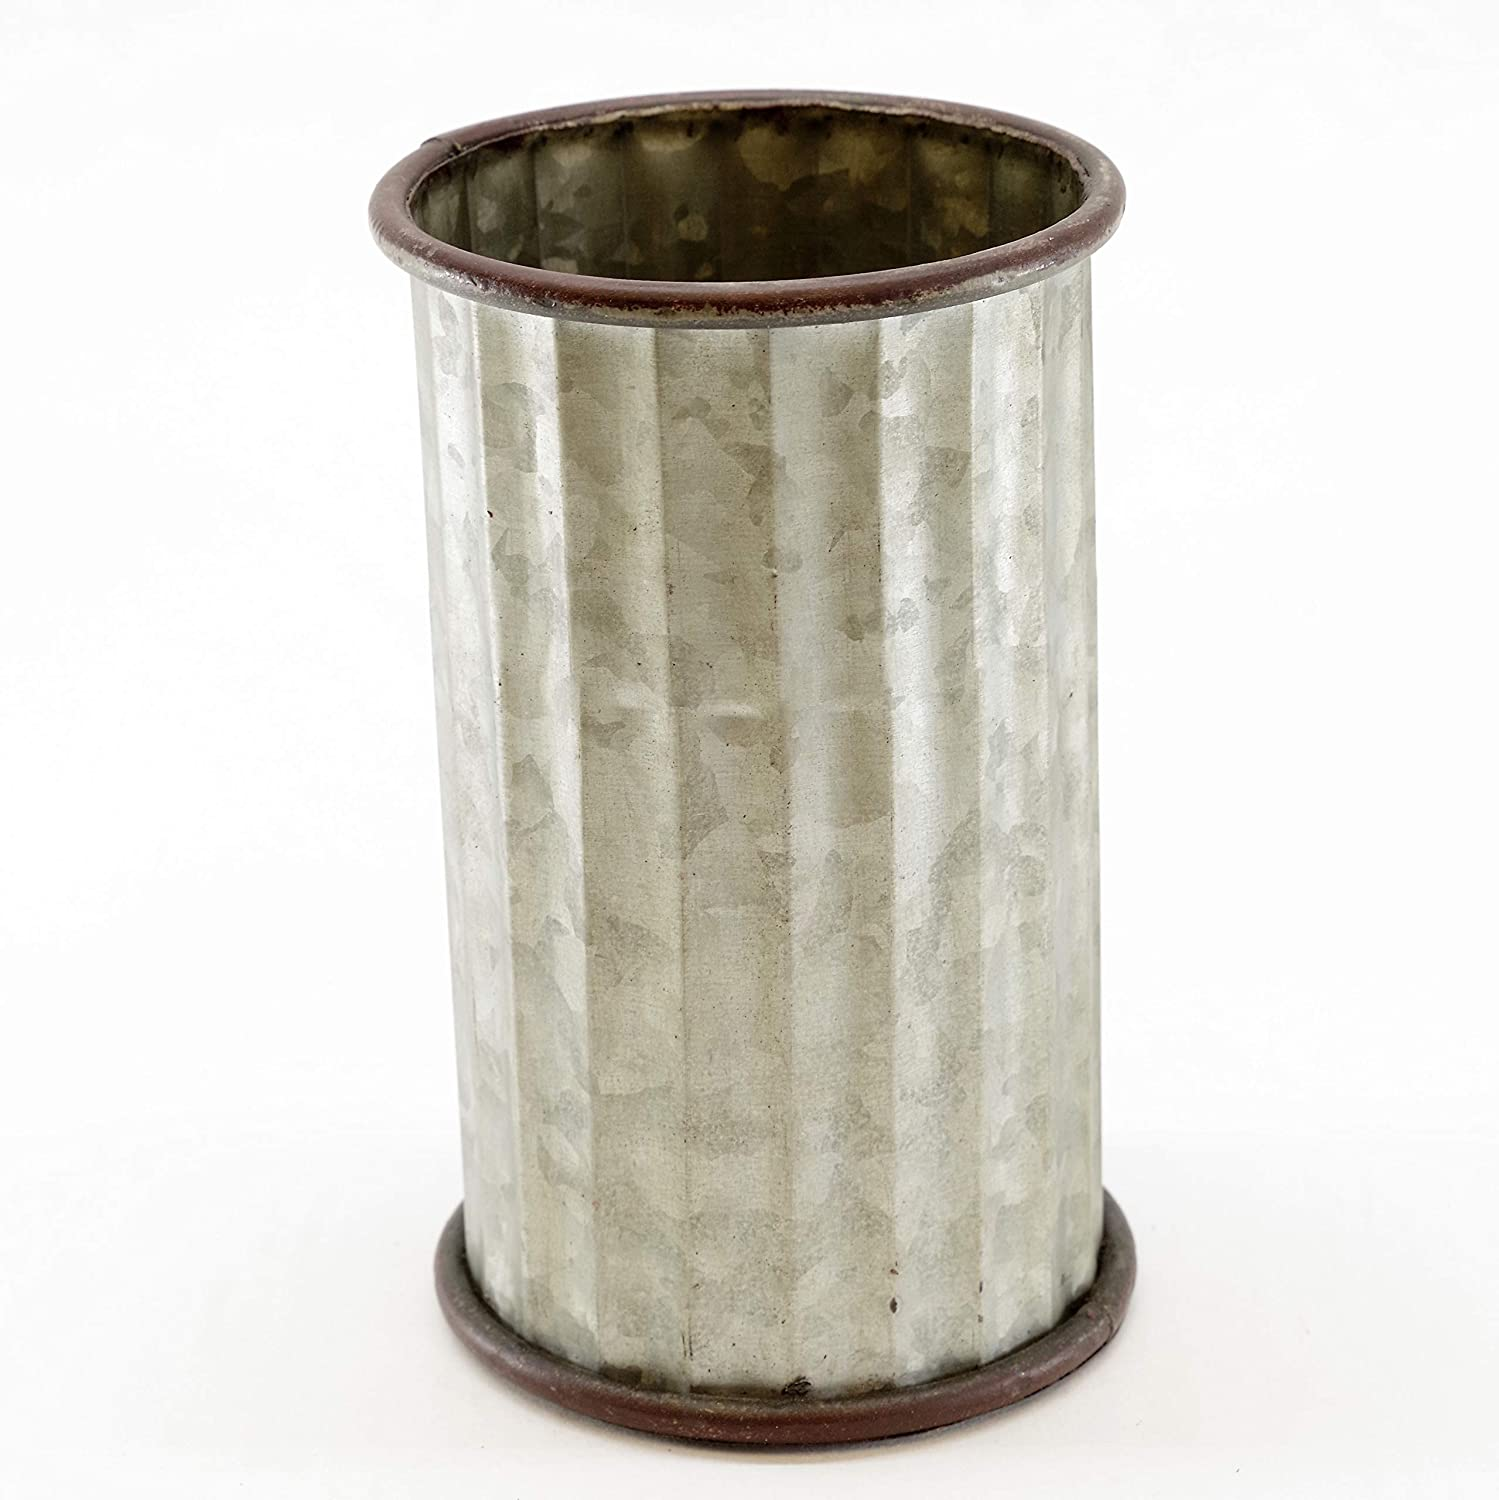 Corrugated tin vase